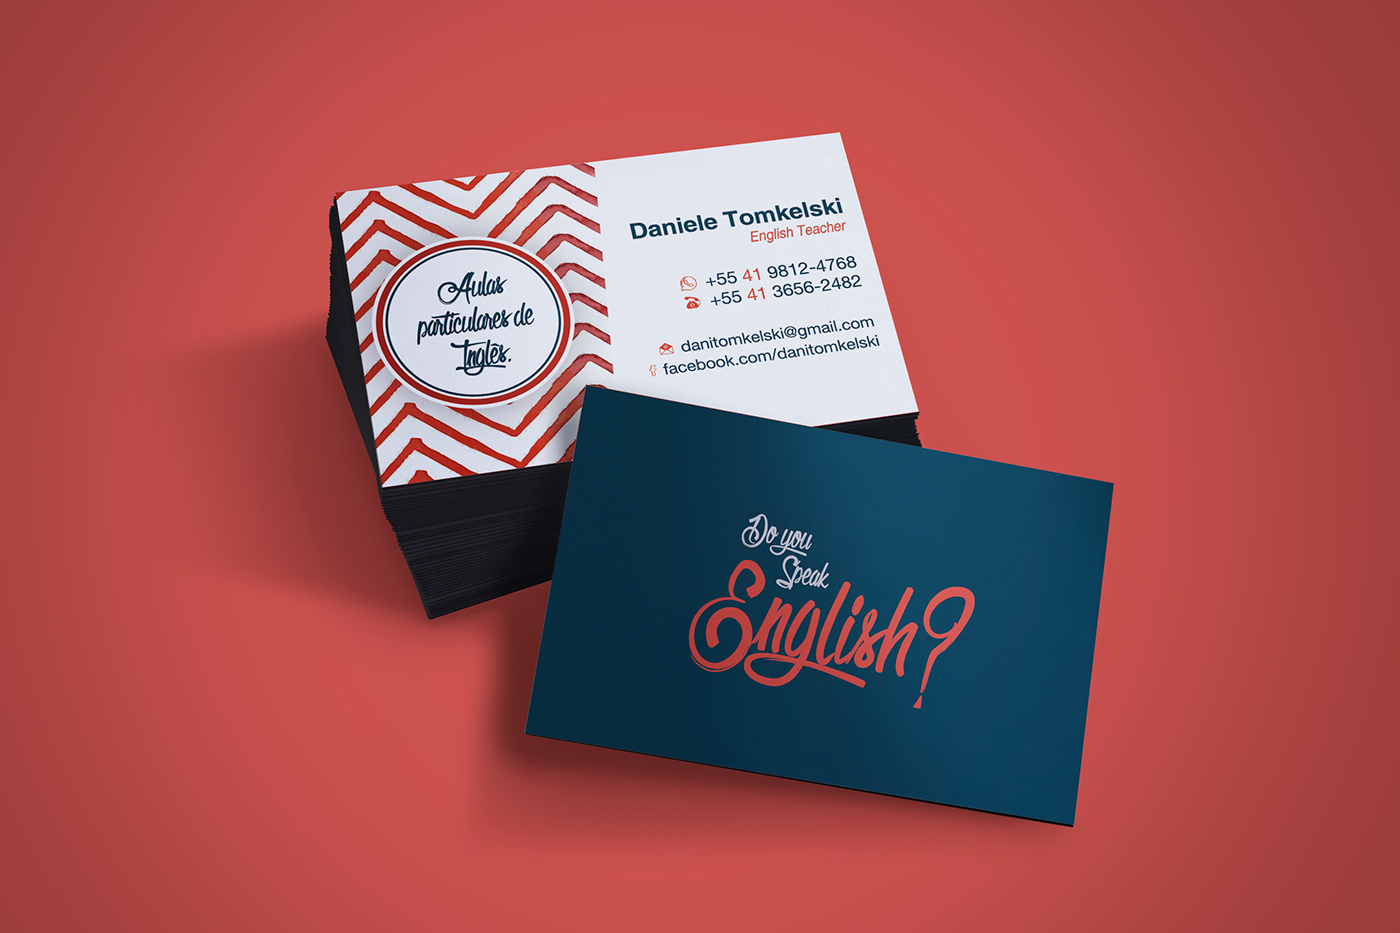 business card english teacher  behance